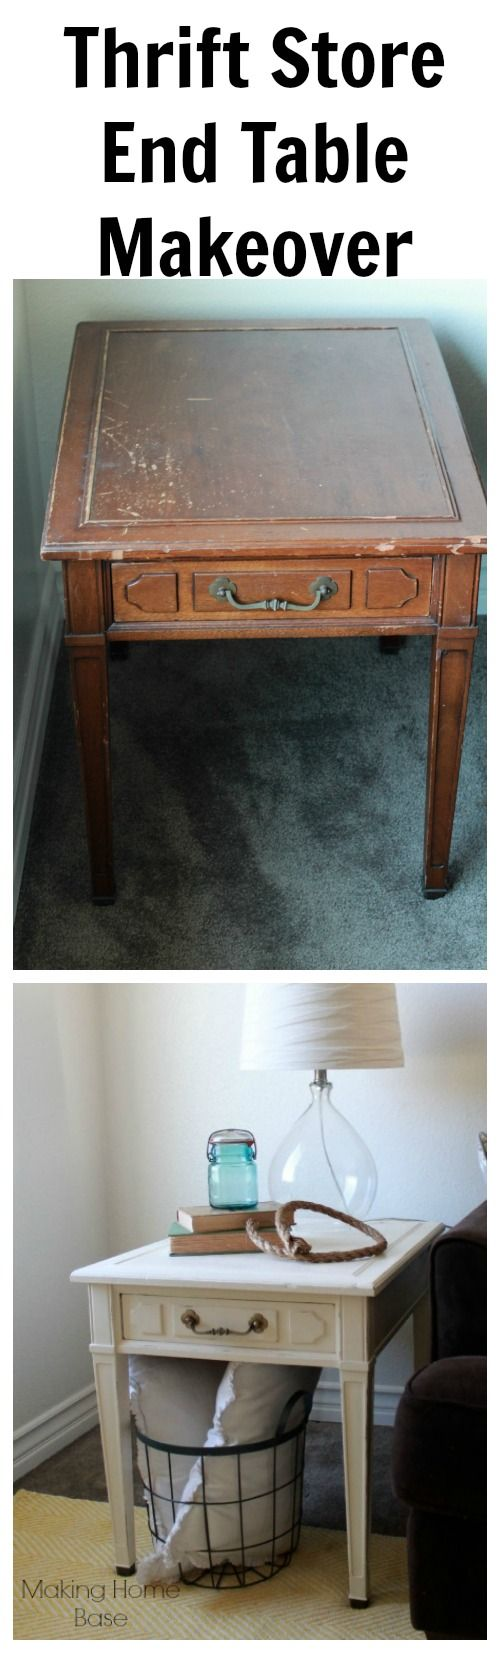 High Quality End Table Makeover: $14 Thrift Store Find To Perfect End Table.